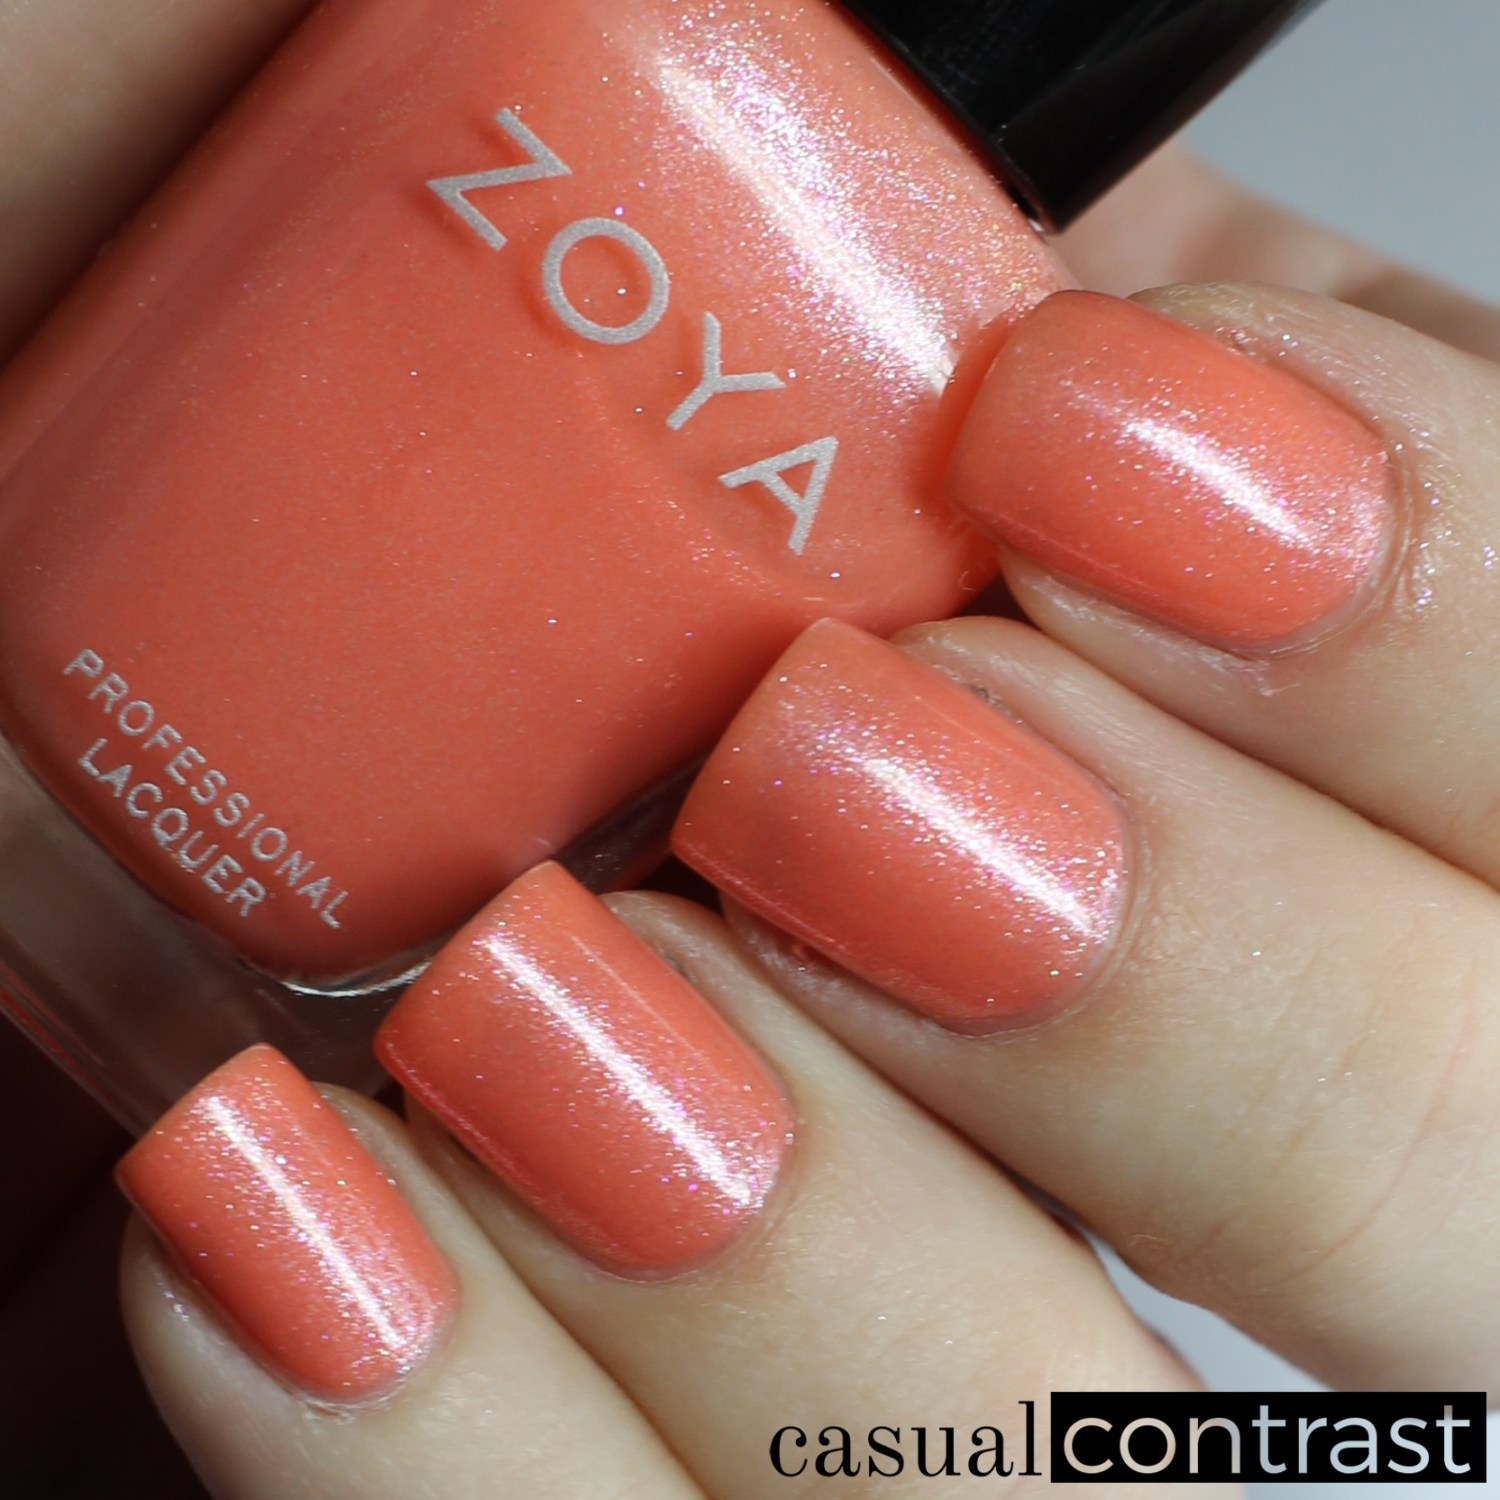 Image of Swatch of Zoya Zahara from the Zoya Petals Collection